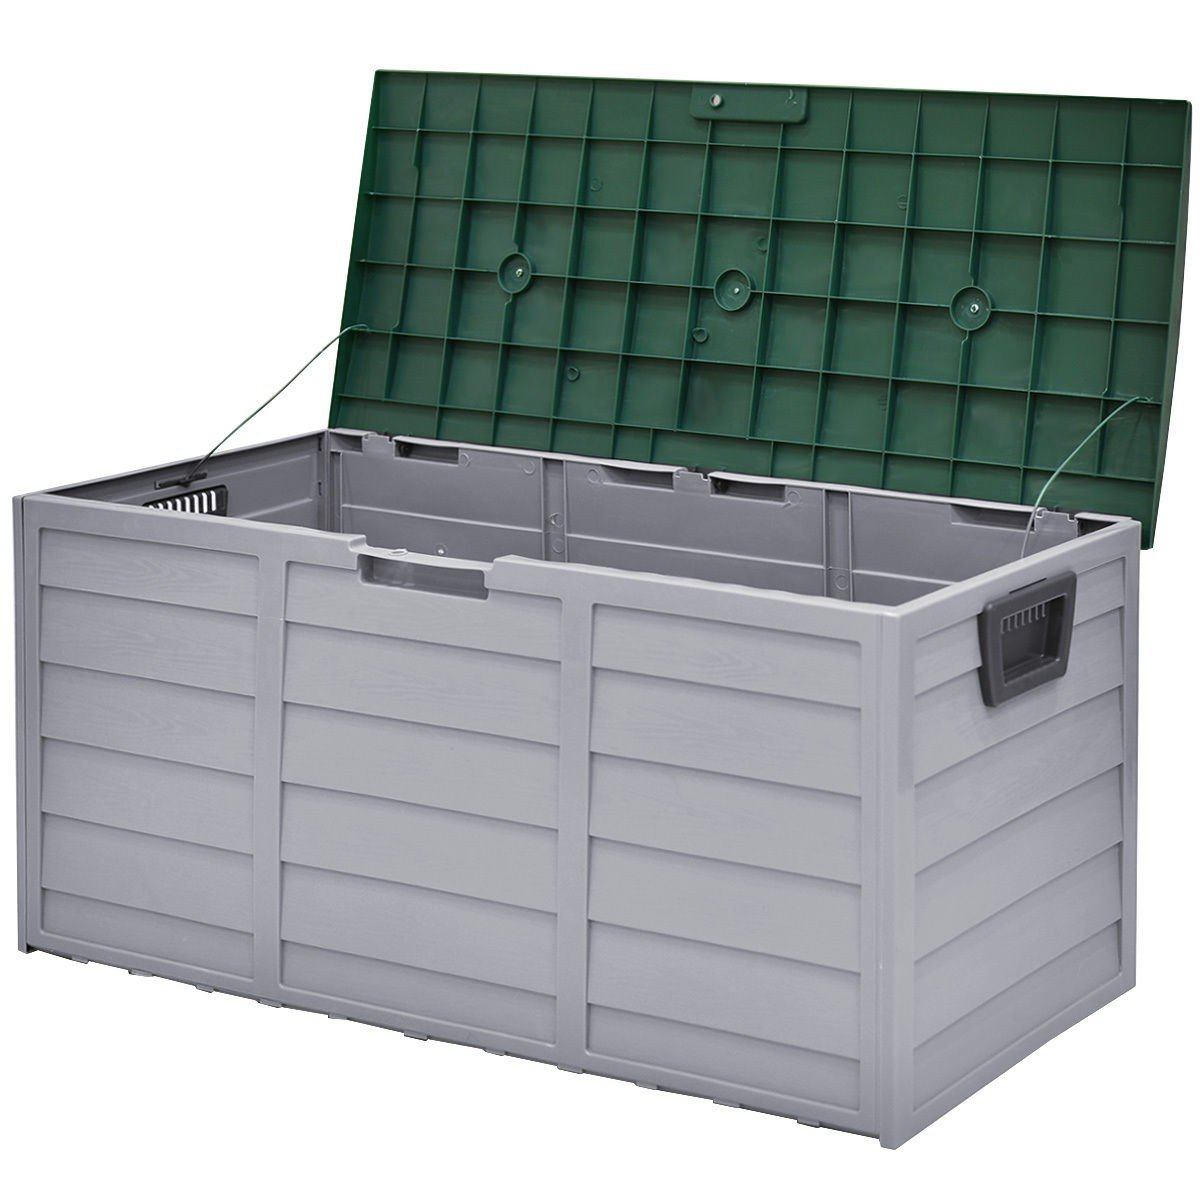 COSTWAY 70 Gallon Durable Outdoor Plasic Storage Box + FREE E-Book by COSTWAY (Image #3)